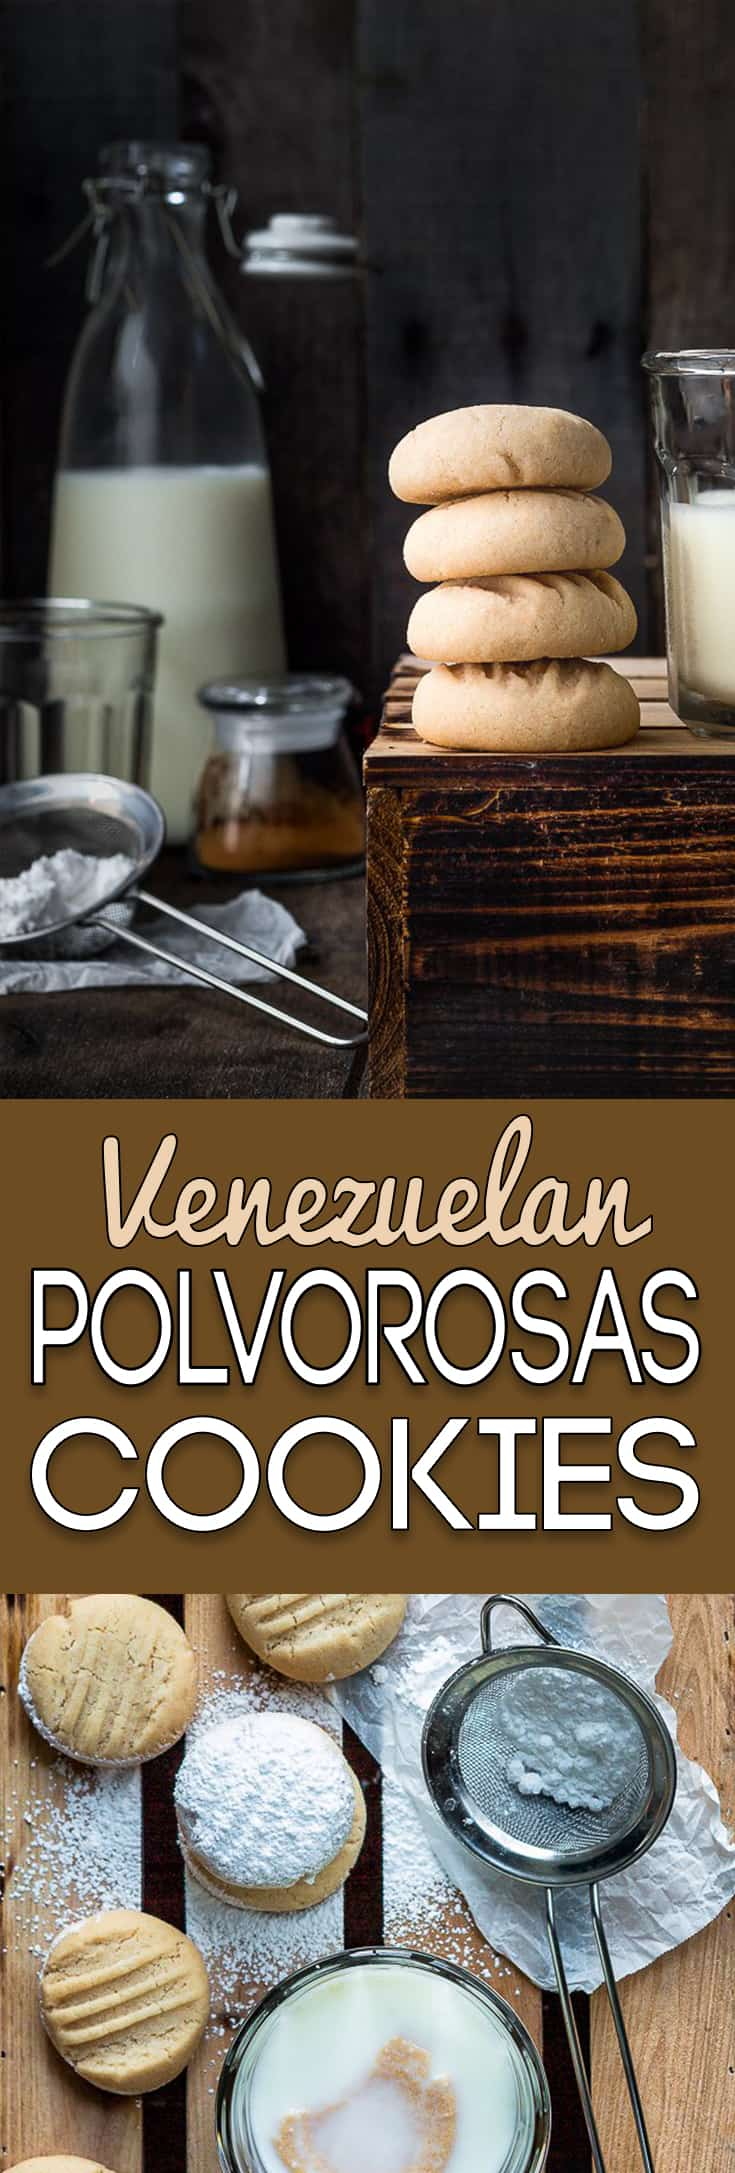 These classic Venezuelan Polvorosas Cookies are always a big hit. Easy to make, easier to eat! They're absolutely the BEST! https://mommyshomecooking.com